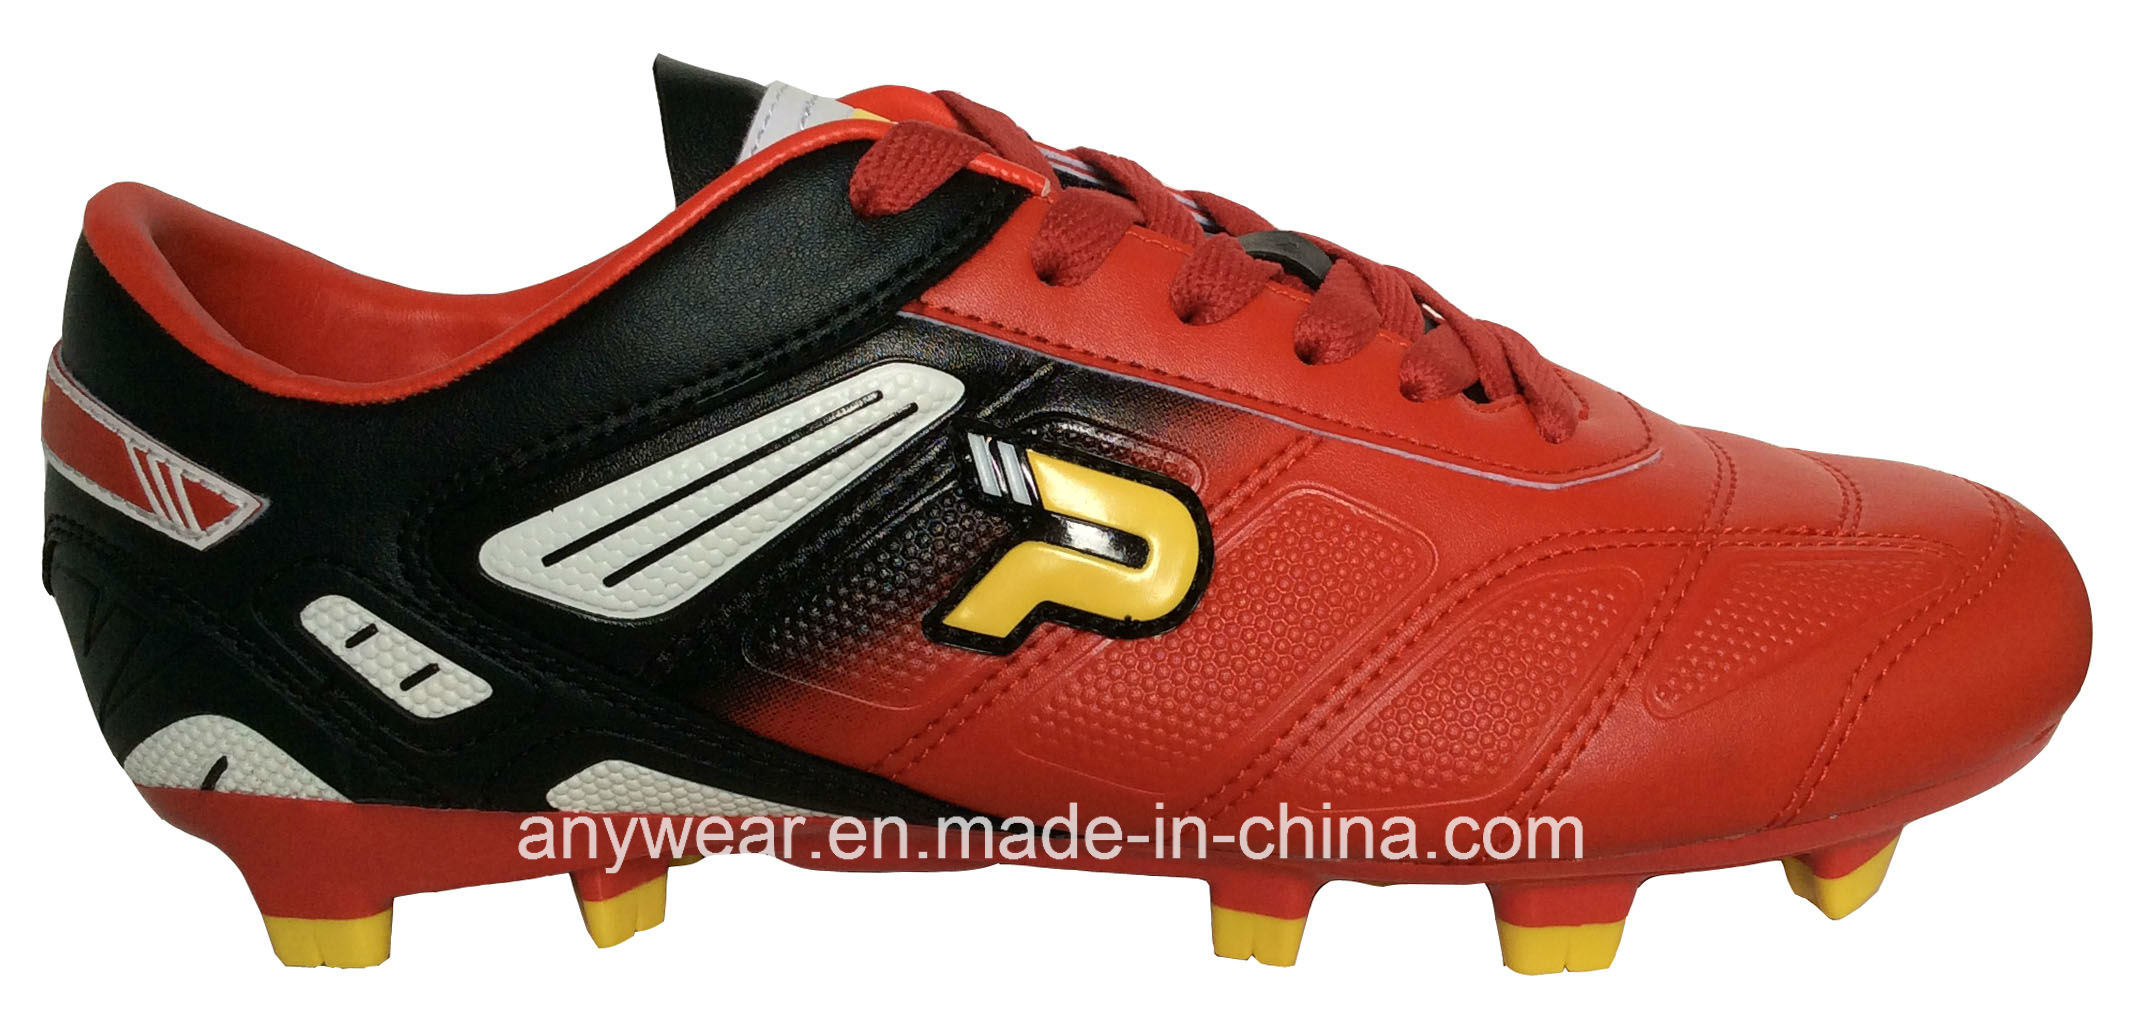 China Men Outdoor Soccer Boots Football Shoes (815-2348)